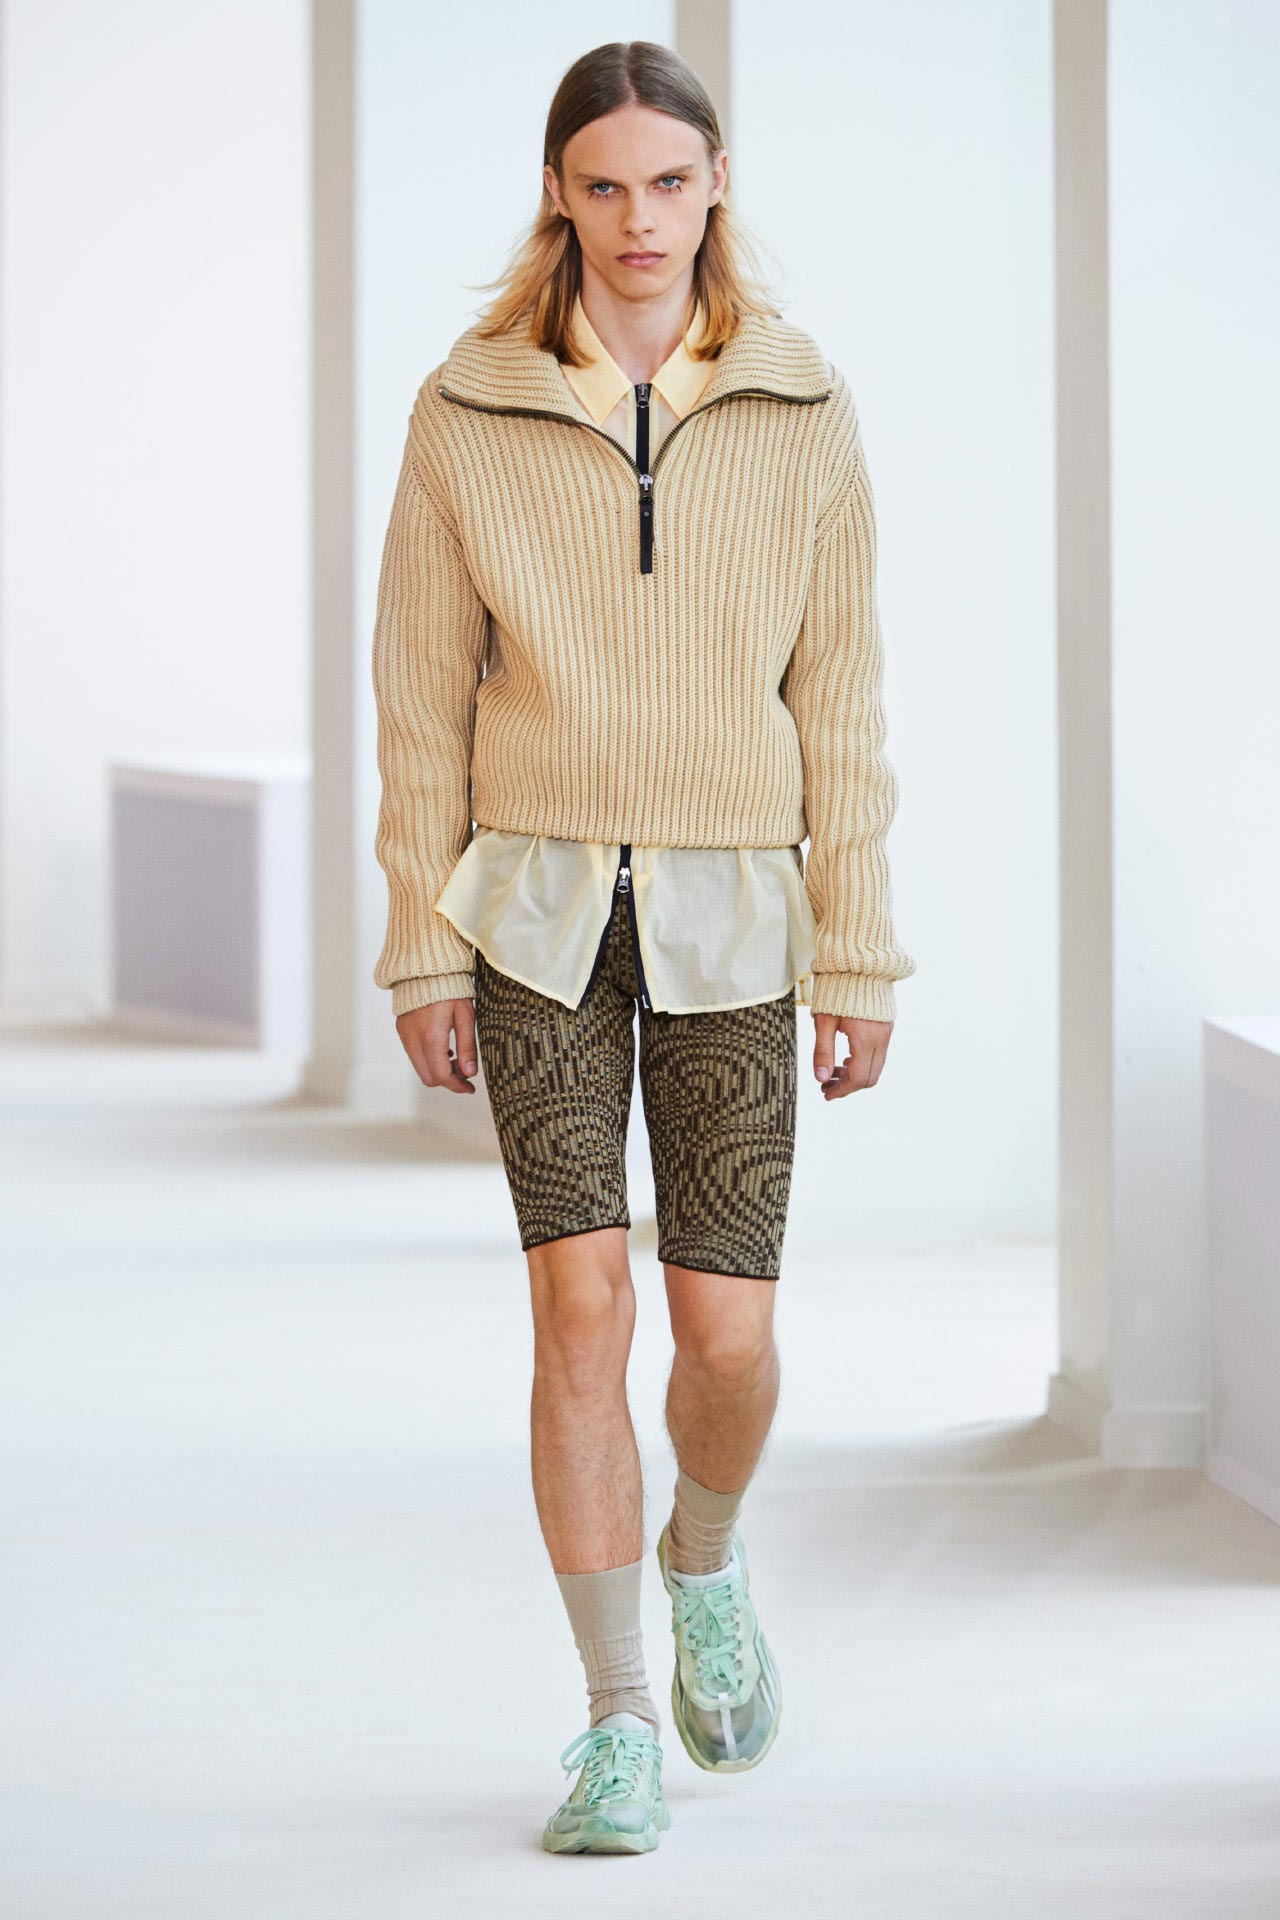 Look Spring/Summer, image 2